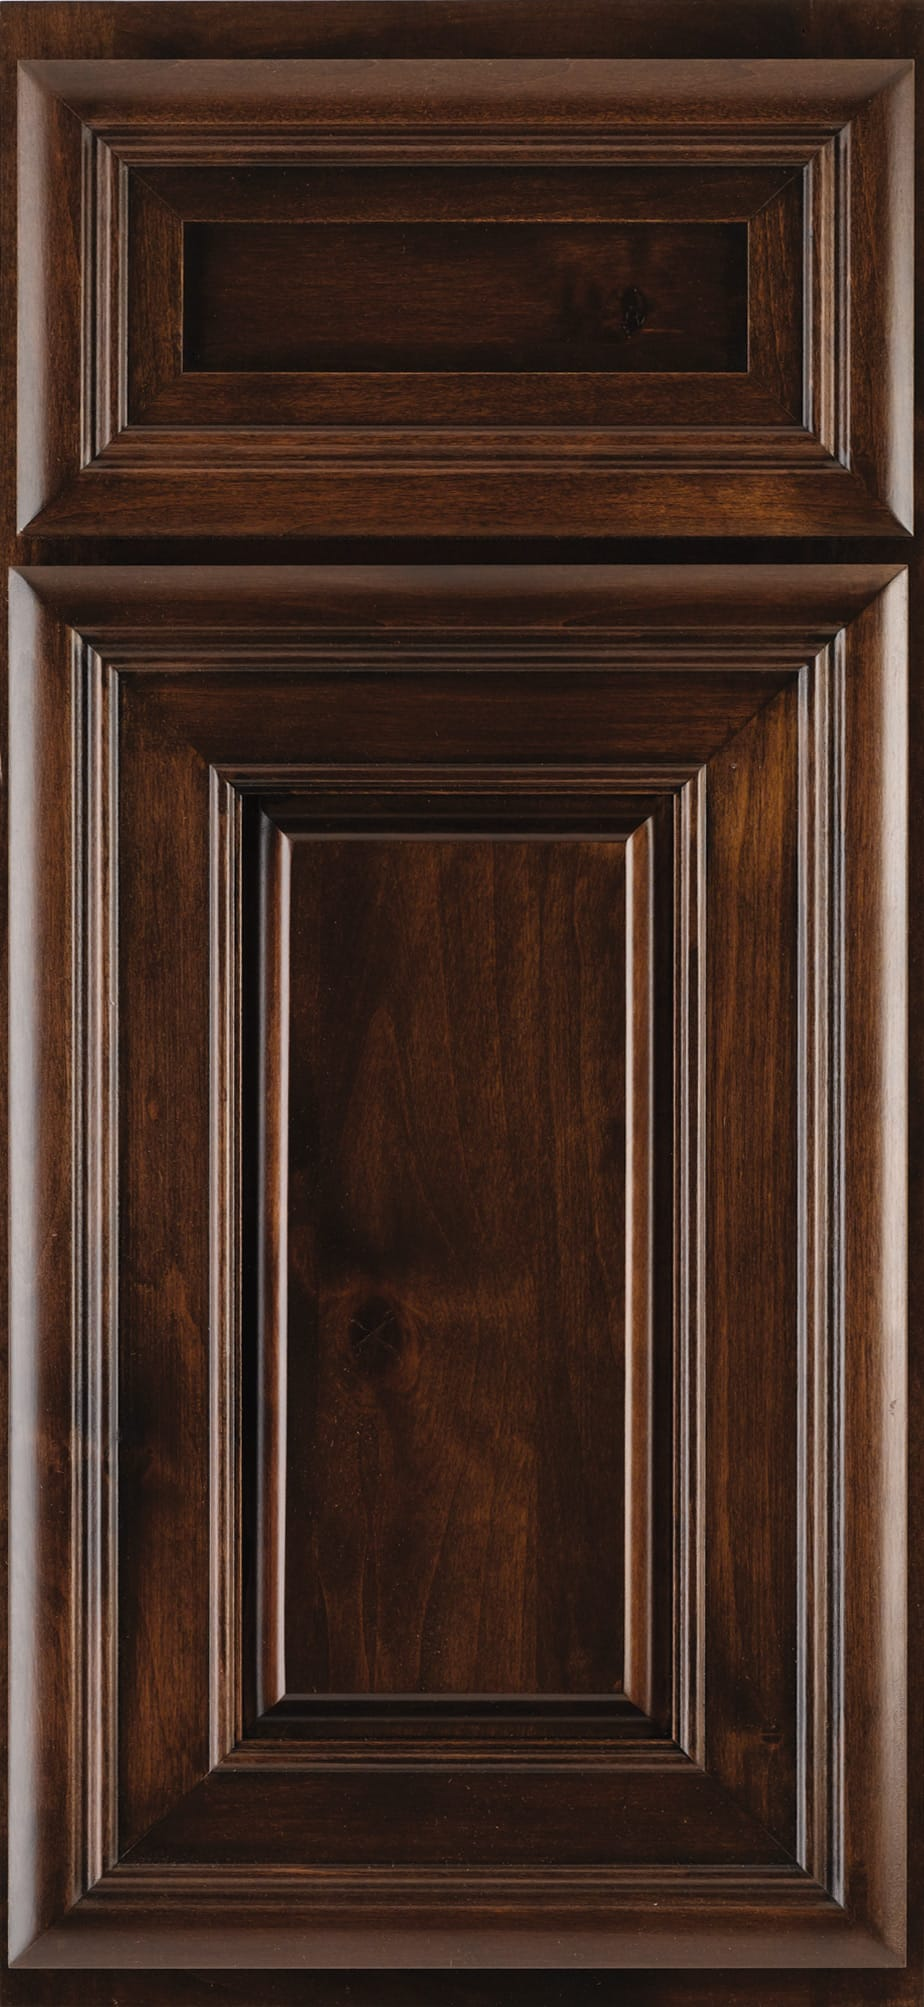 Custom Kitchen Cabinets Doors  Cabinet Doors. Garage Hanging Hooks. Name Plates For Office Doors. Pet Doors Home Depot. Cheap Hotels In Door County. French Front Doors. Garage Door Stop Molding Weather Seal. Garage Door Repair Norfolk Va. Home Depot French Door Refrigerator